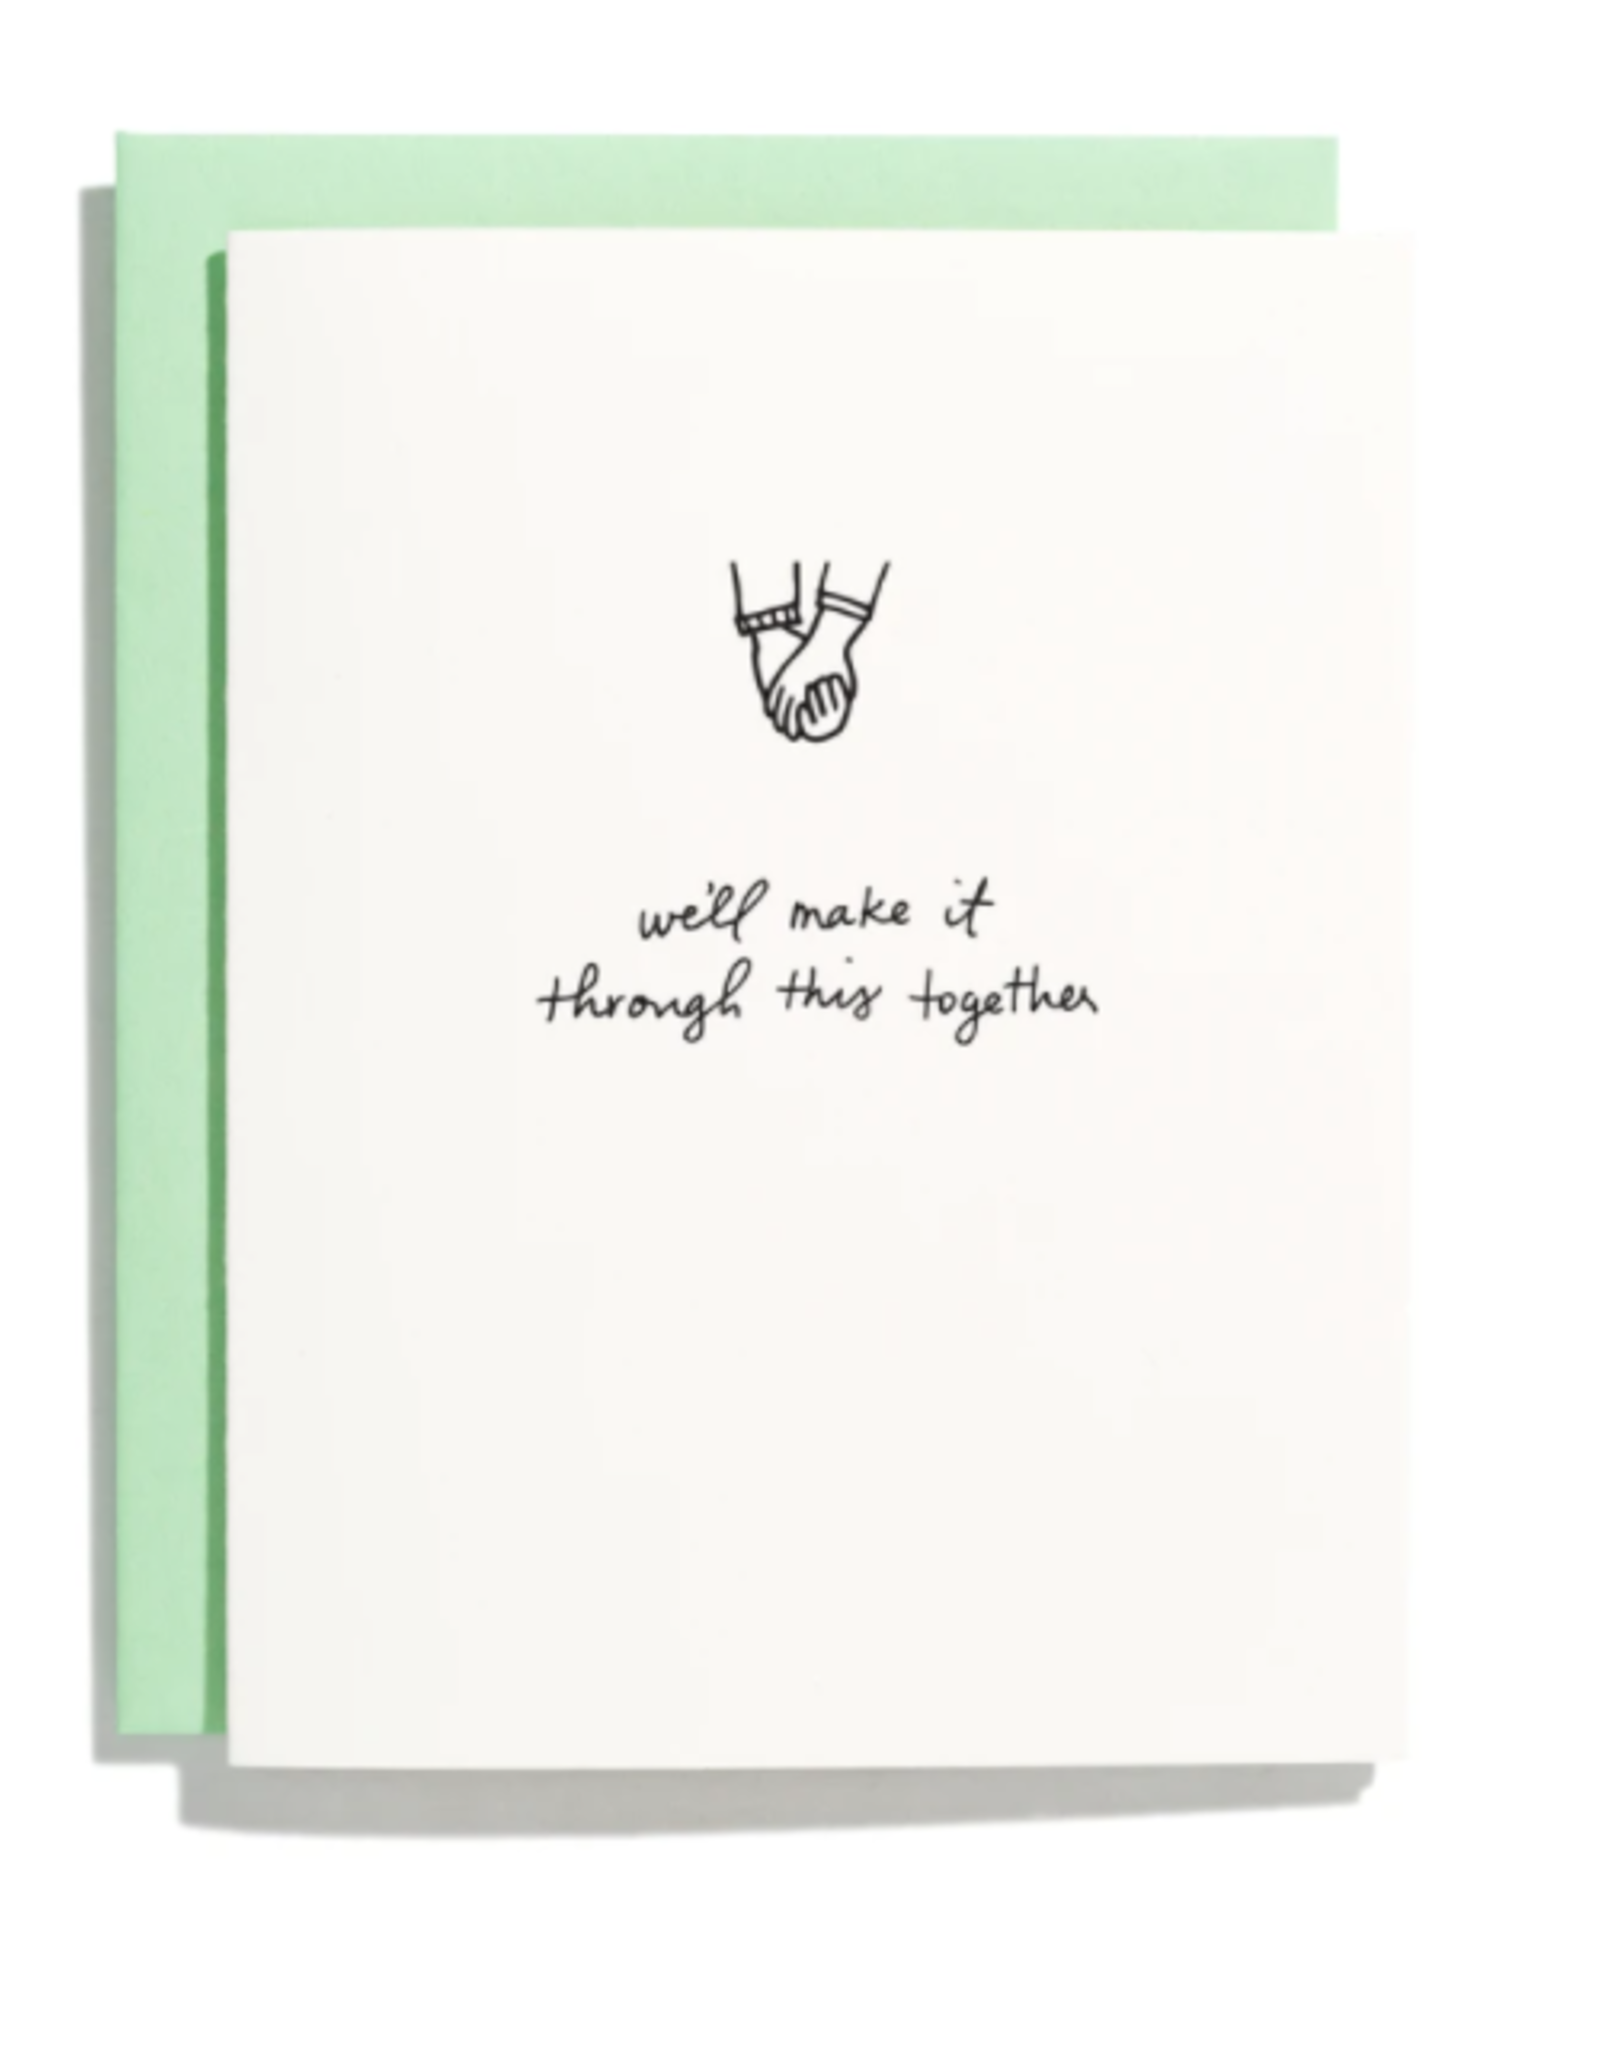 Make It Through Together Card